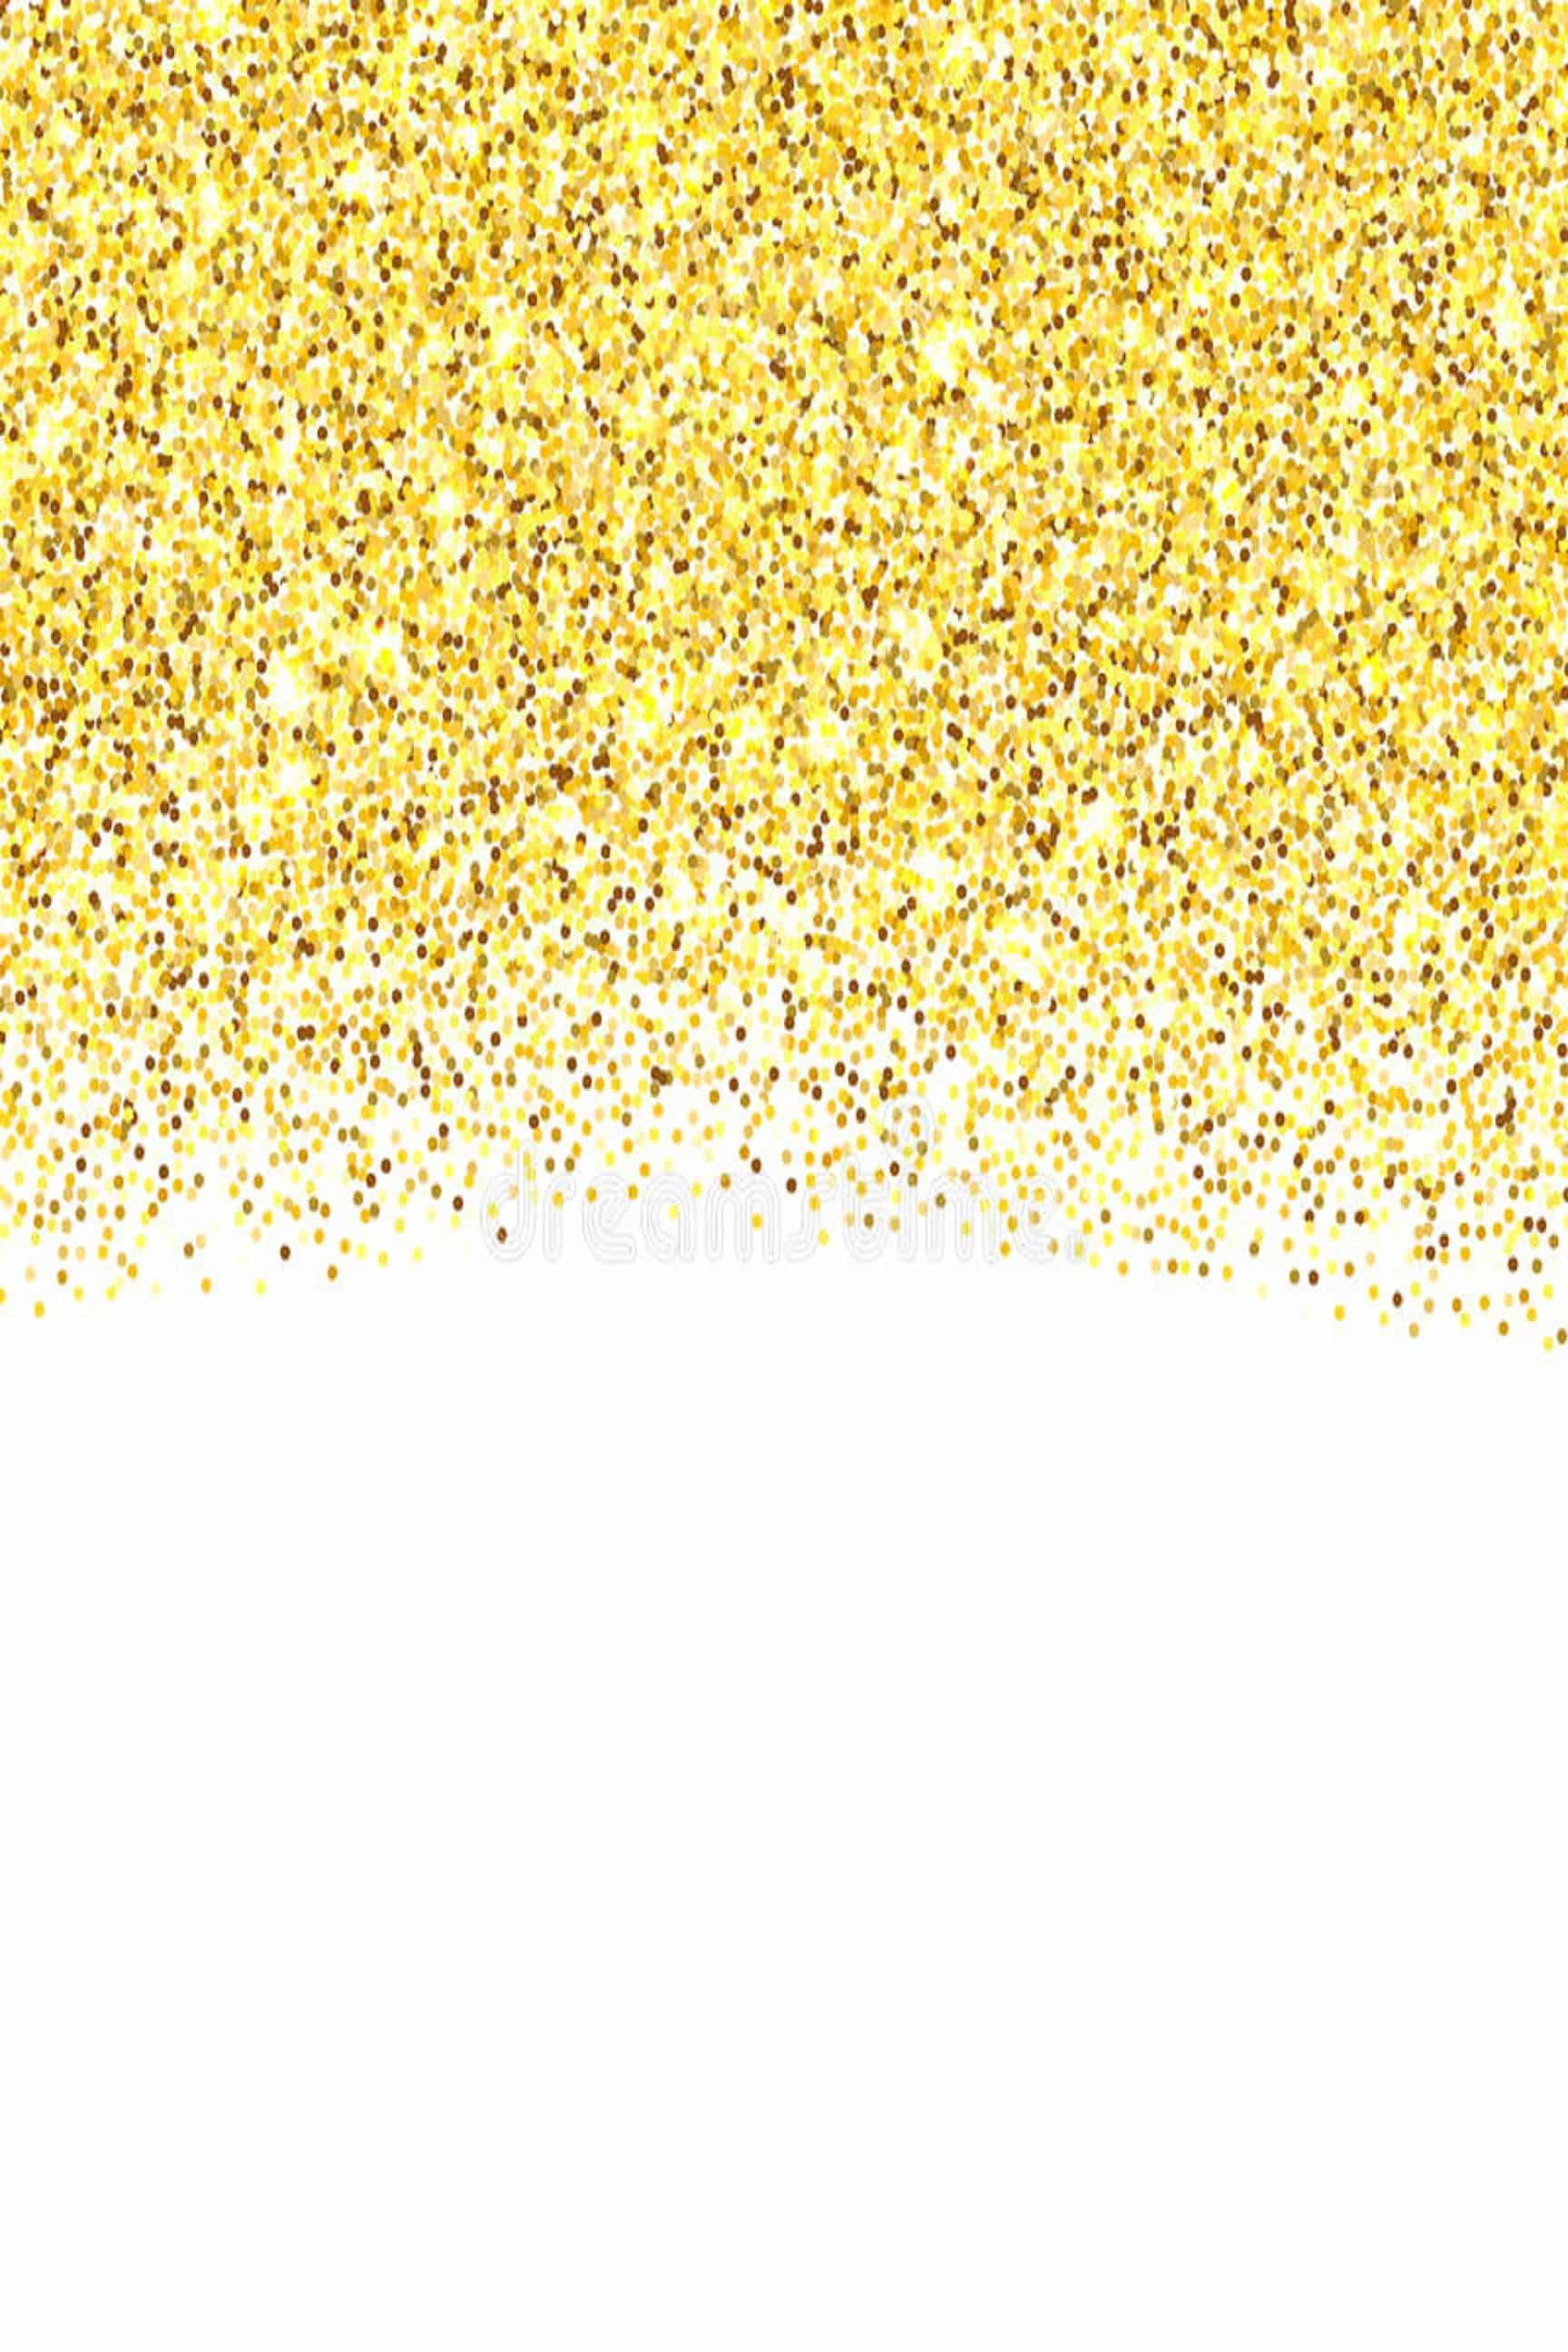 gold-glitter-textured-border 1